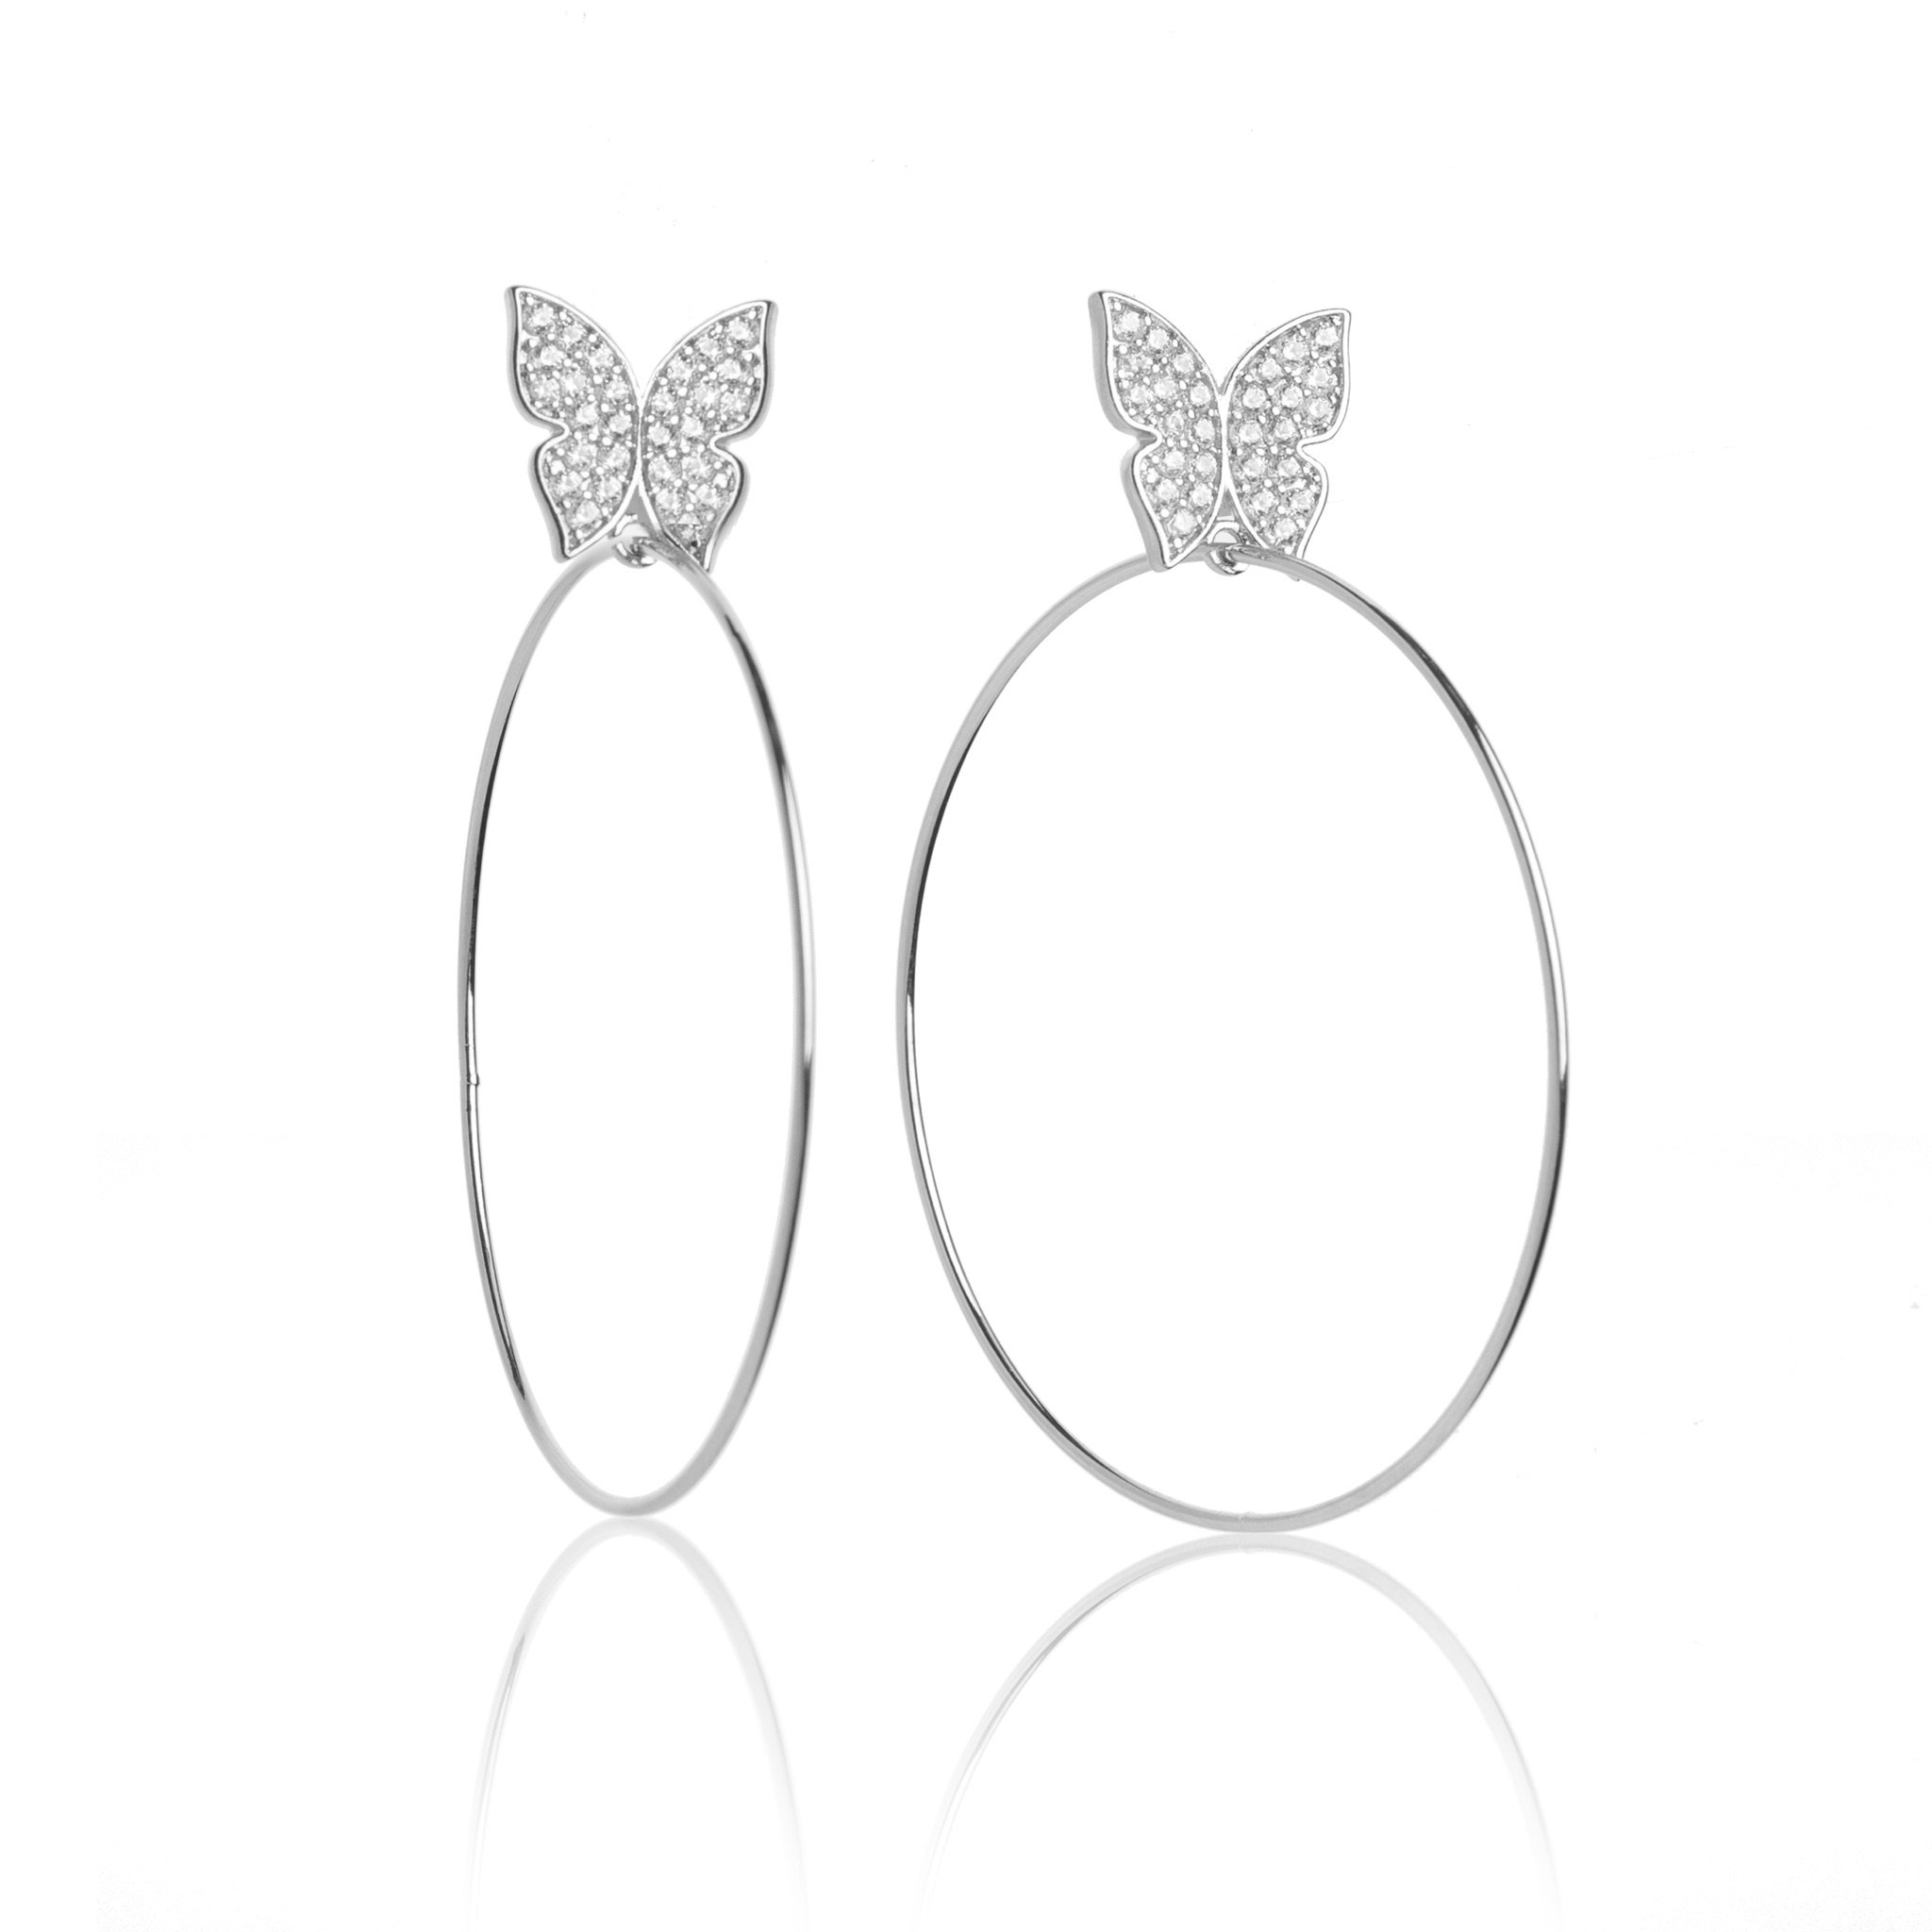 """Evelyn Signature 2"""" & 4"""" White Gold Hoop Earrings - Go to https://t.co/LHUWbOgl6K https://t.co/qicukxI6lZ"""